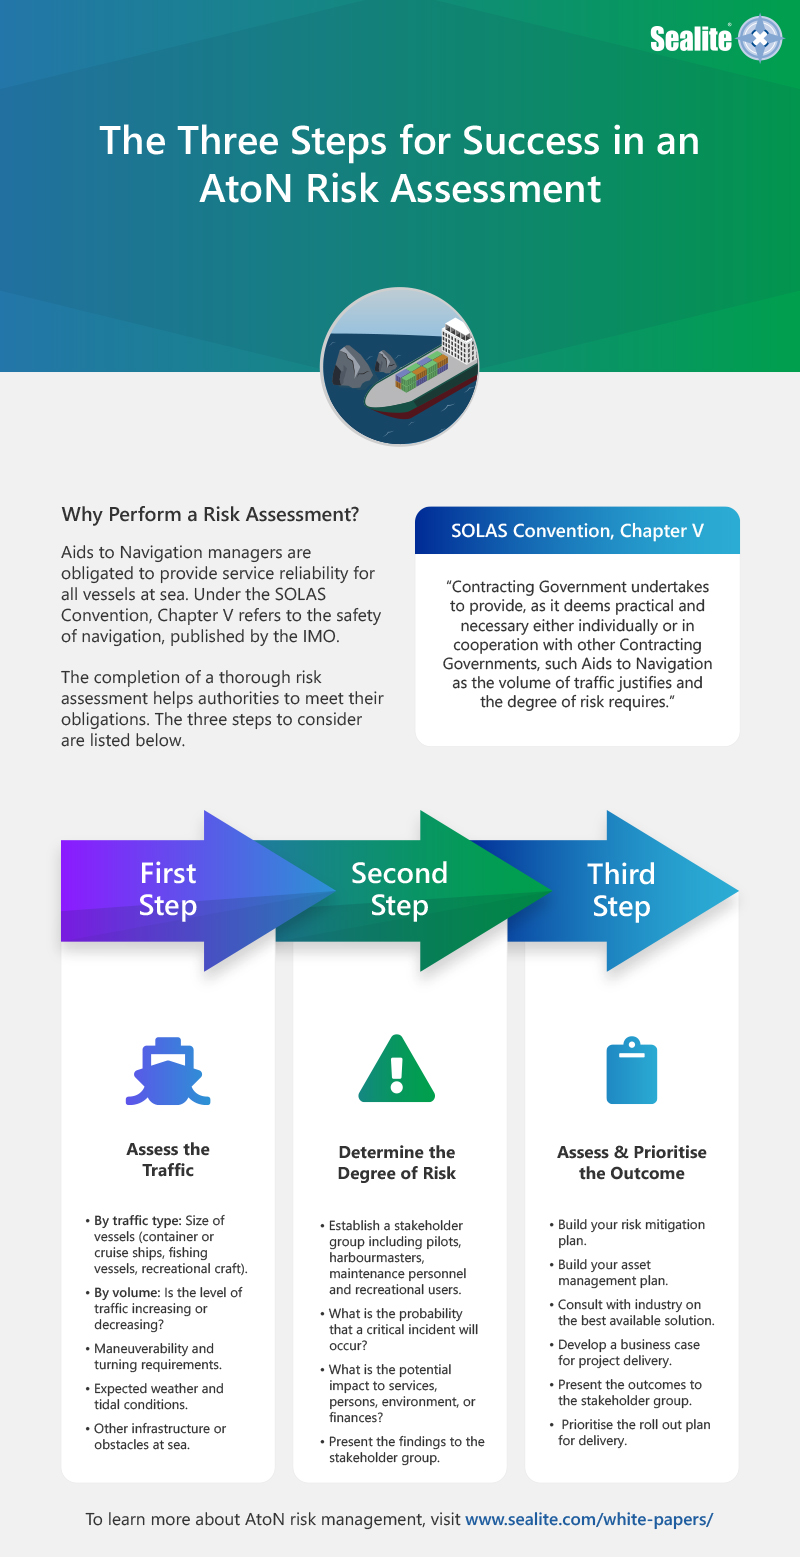 Three easy steps to follow when conducting an AtoN risk assessment [Infographic]